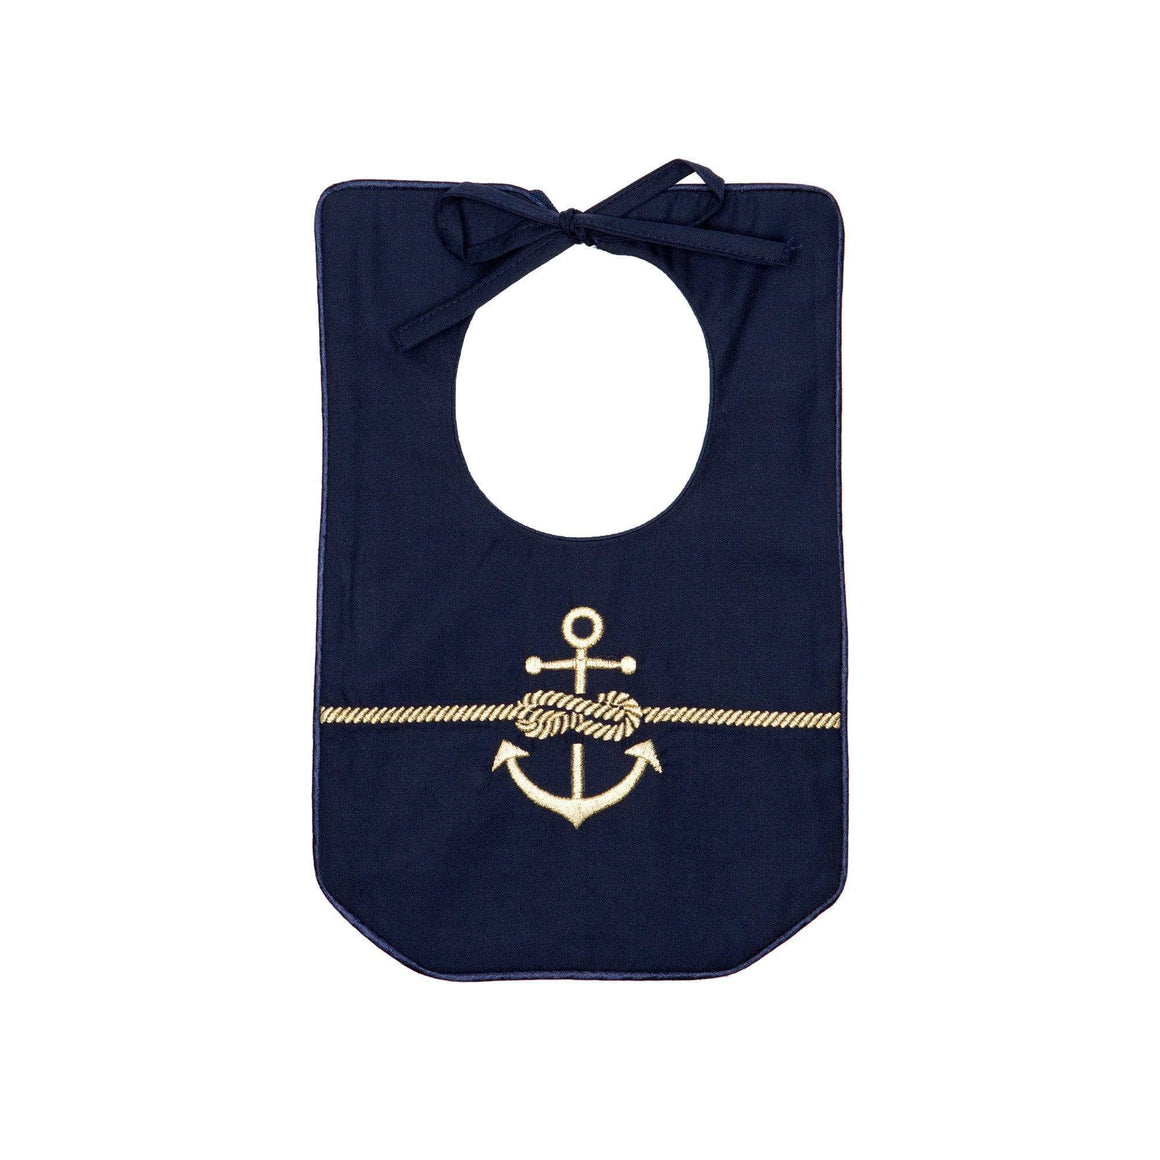 Gold Rope & Anchor Bib Poppie and George